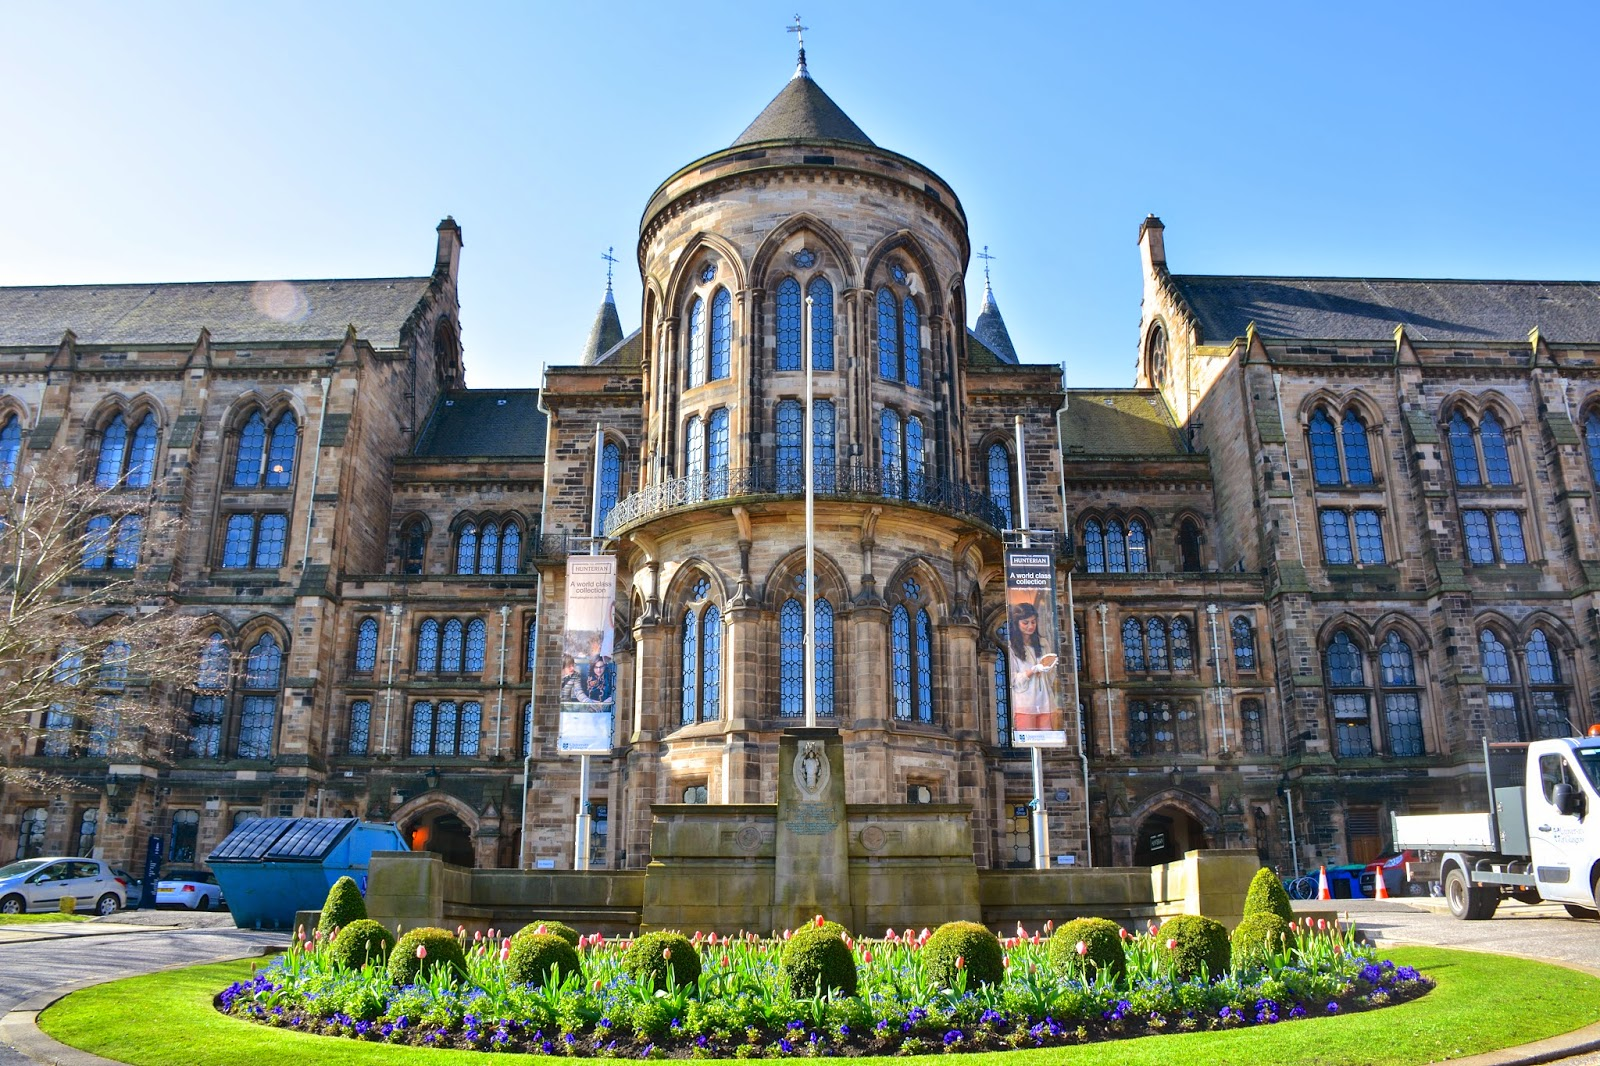 University of Glasgow's main campus